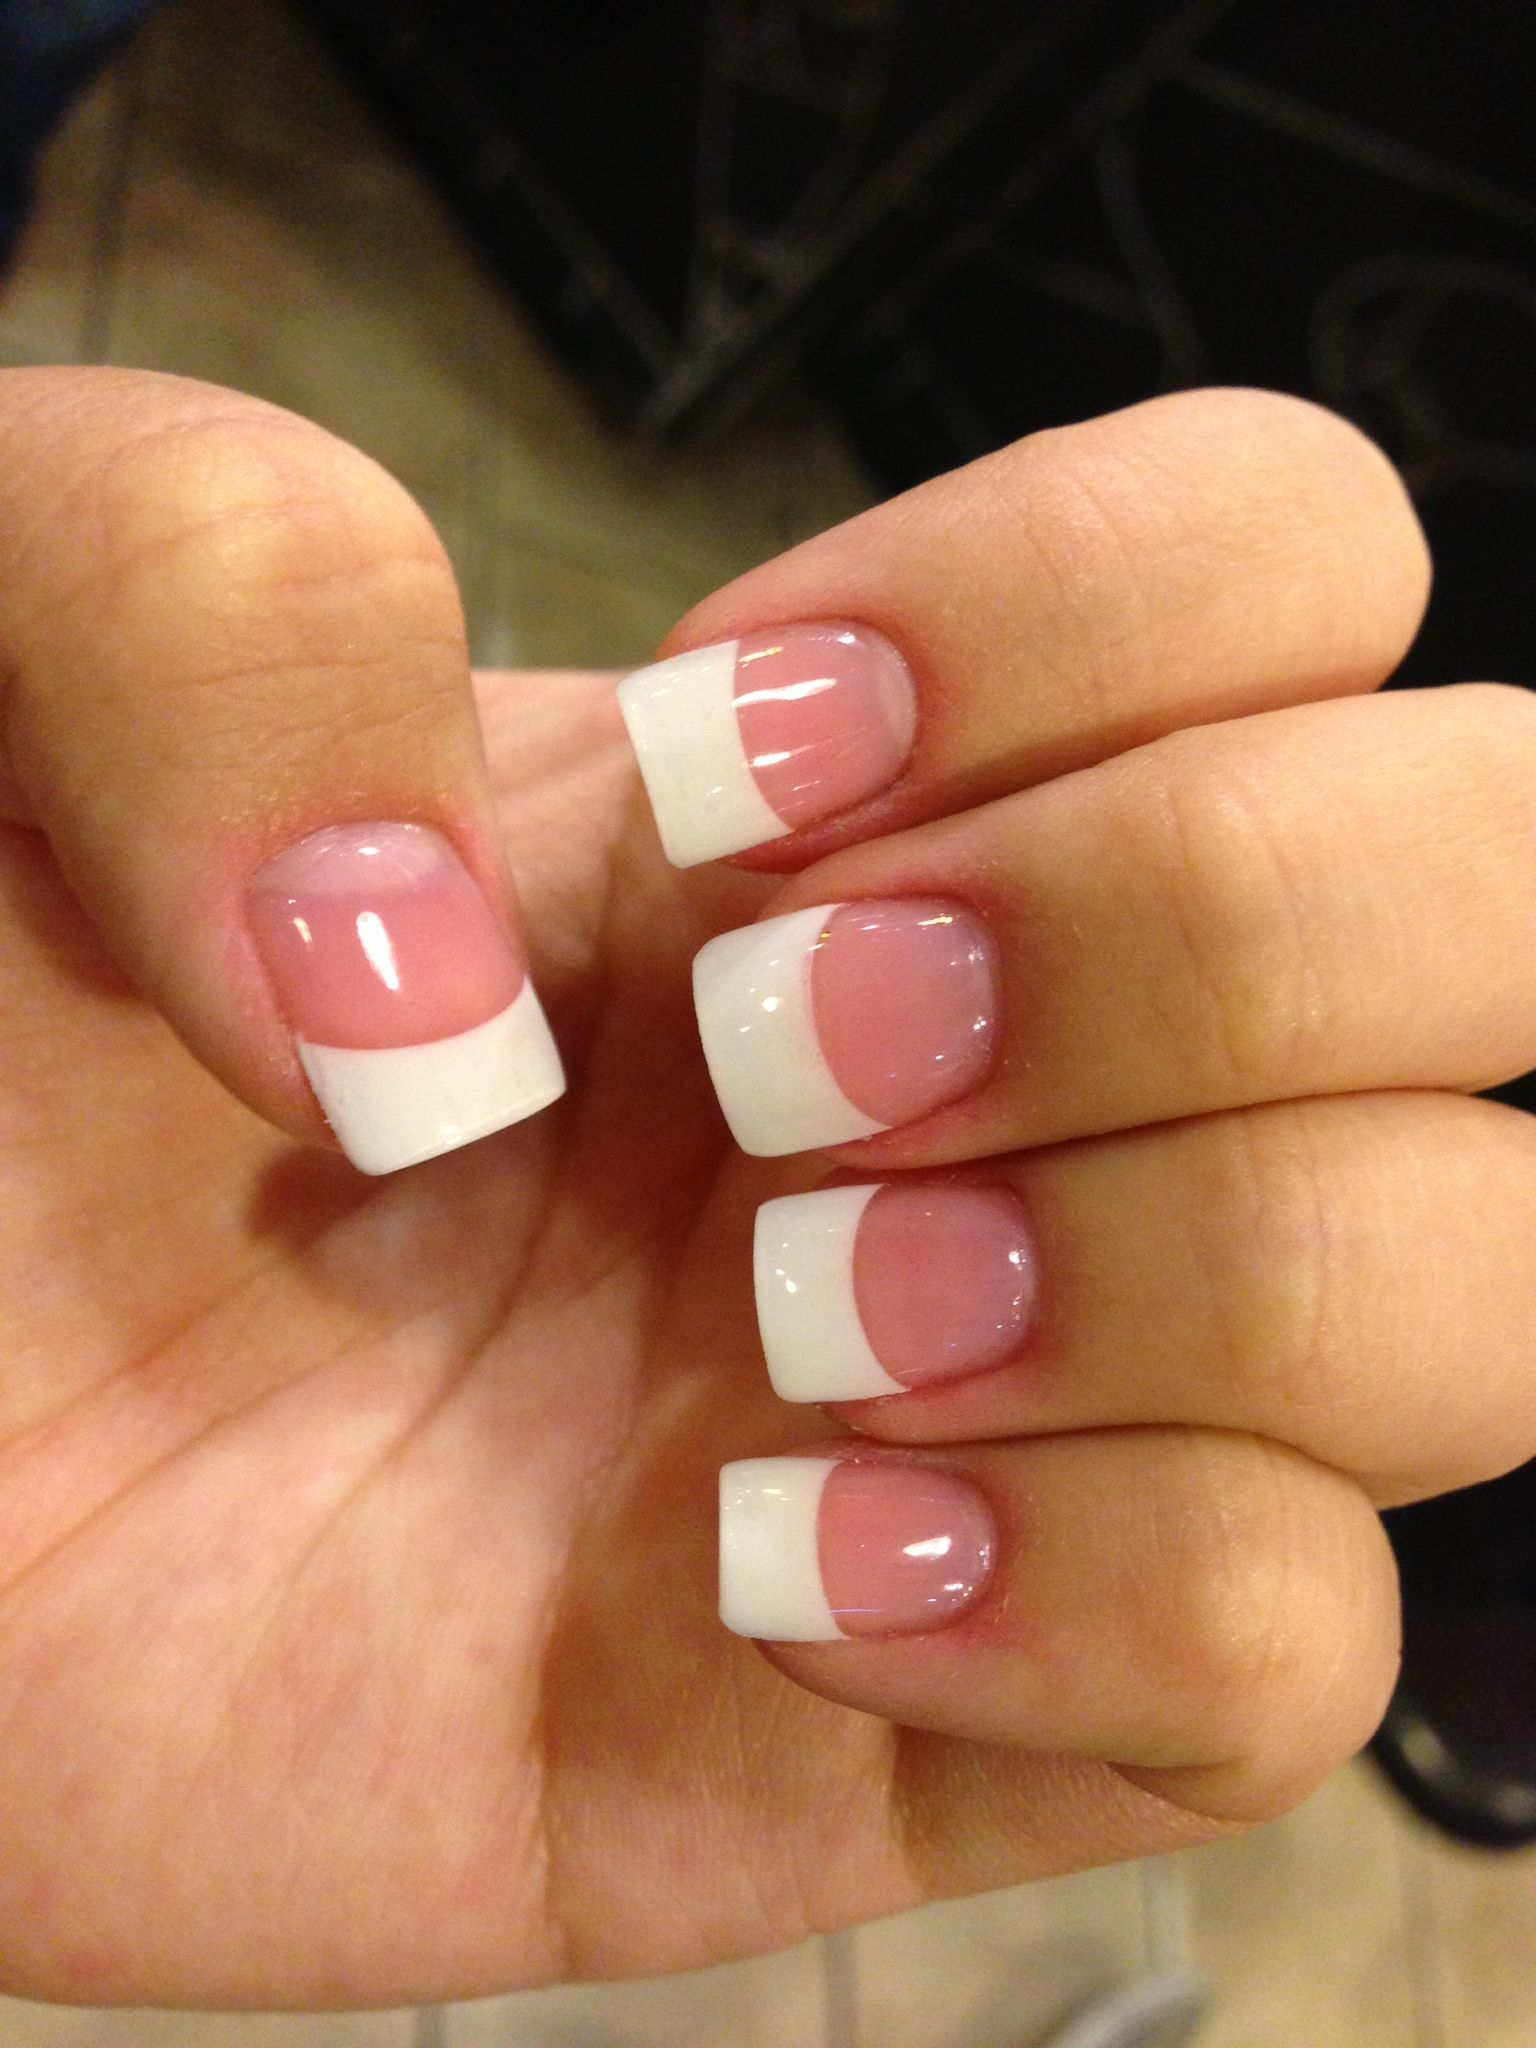 White tip acrylic with gel top coat   Nails   Pinterest   Gel top ...